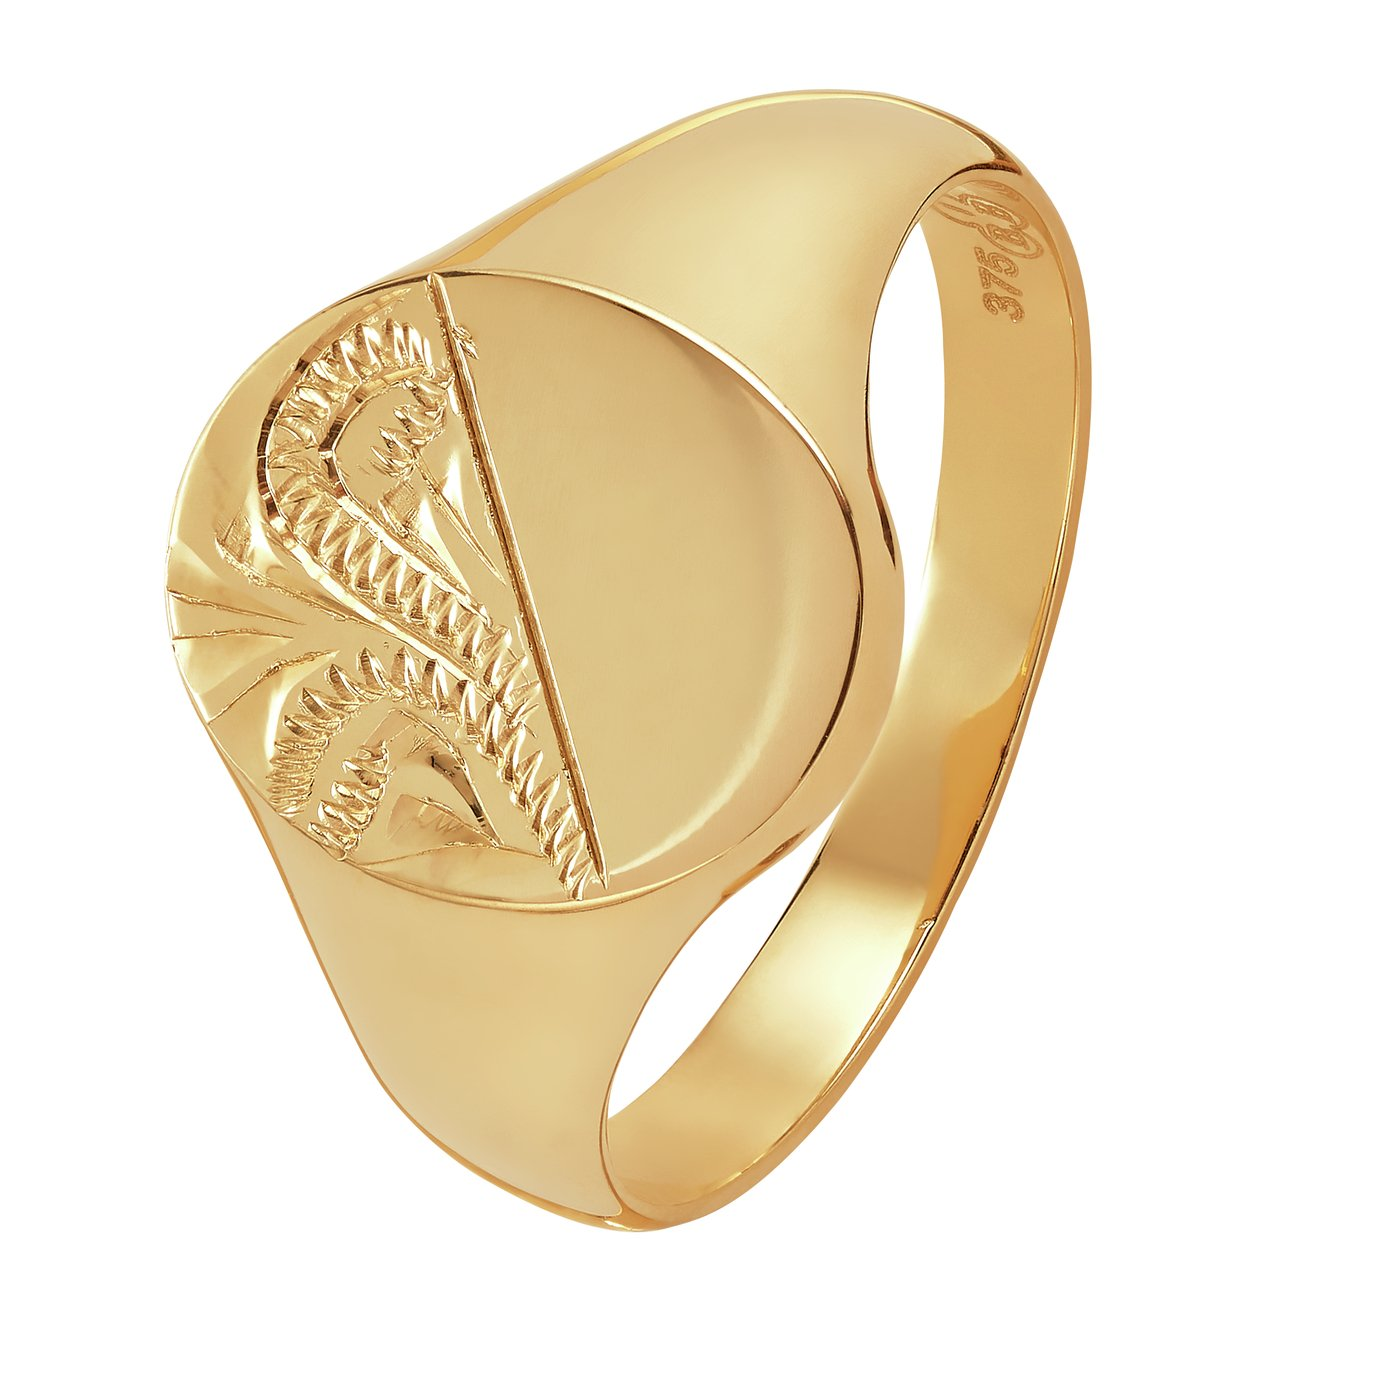 Revere 9ct Yellow Gold Oval Half Engraved Signet Ring